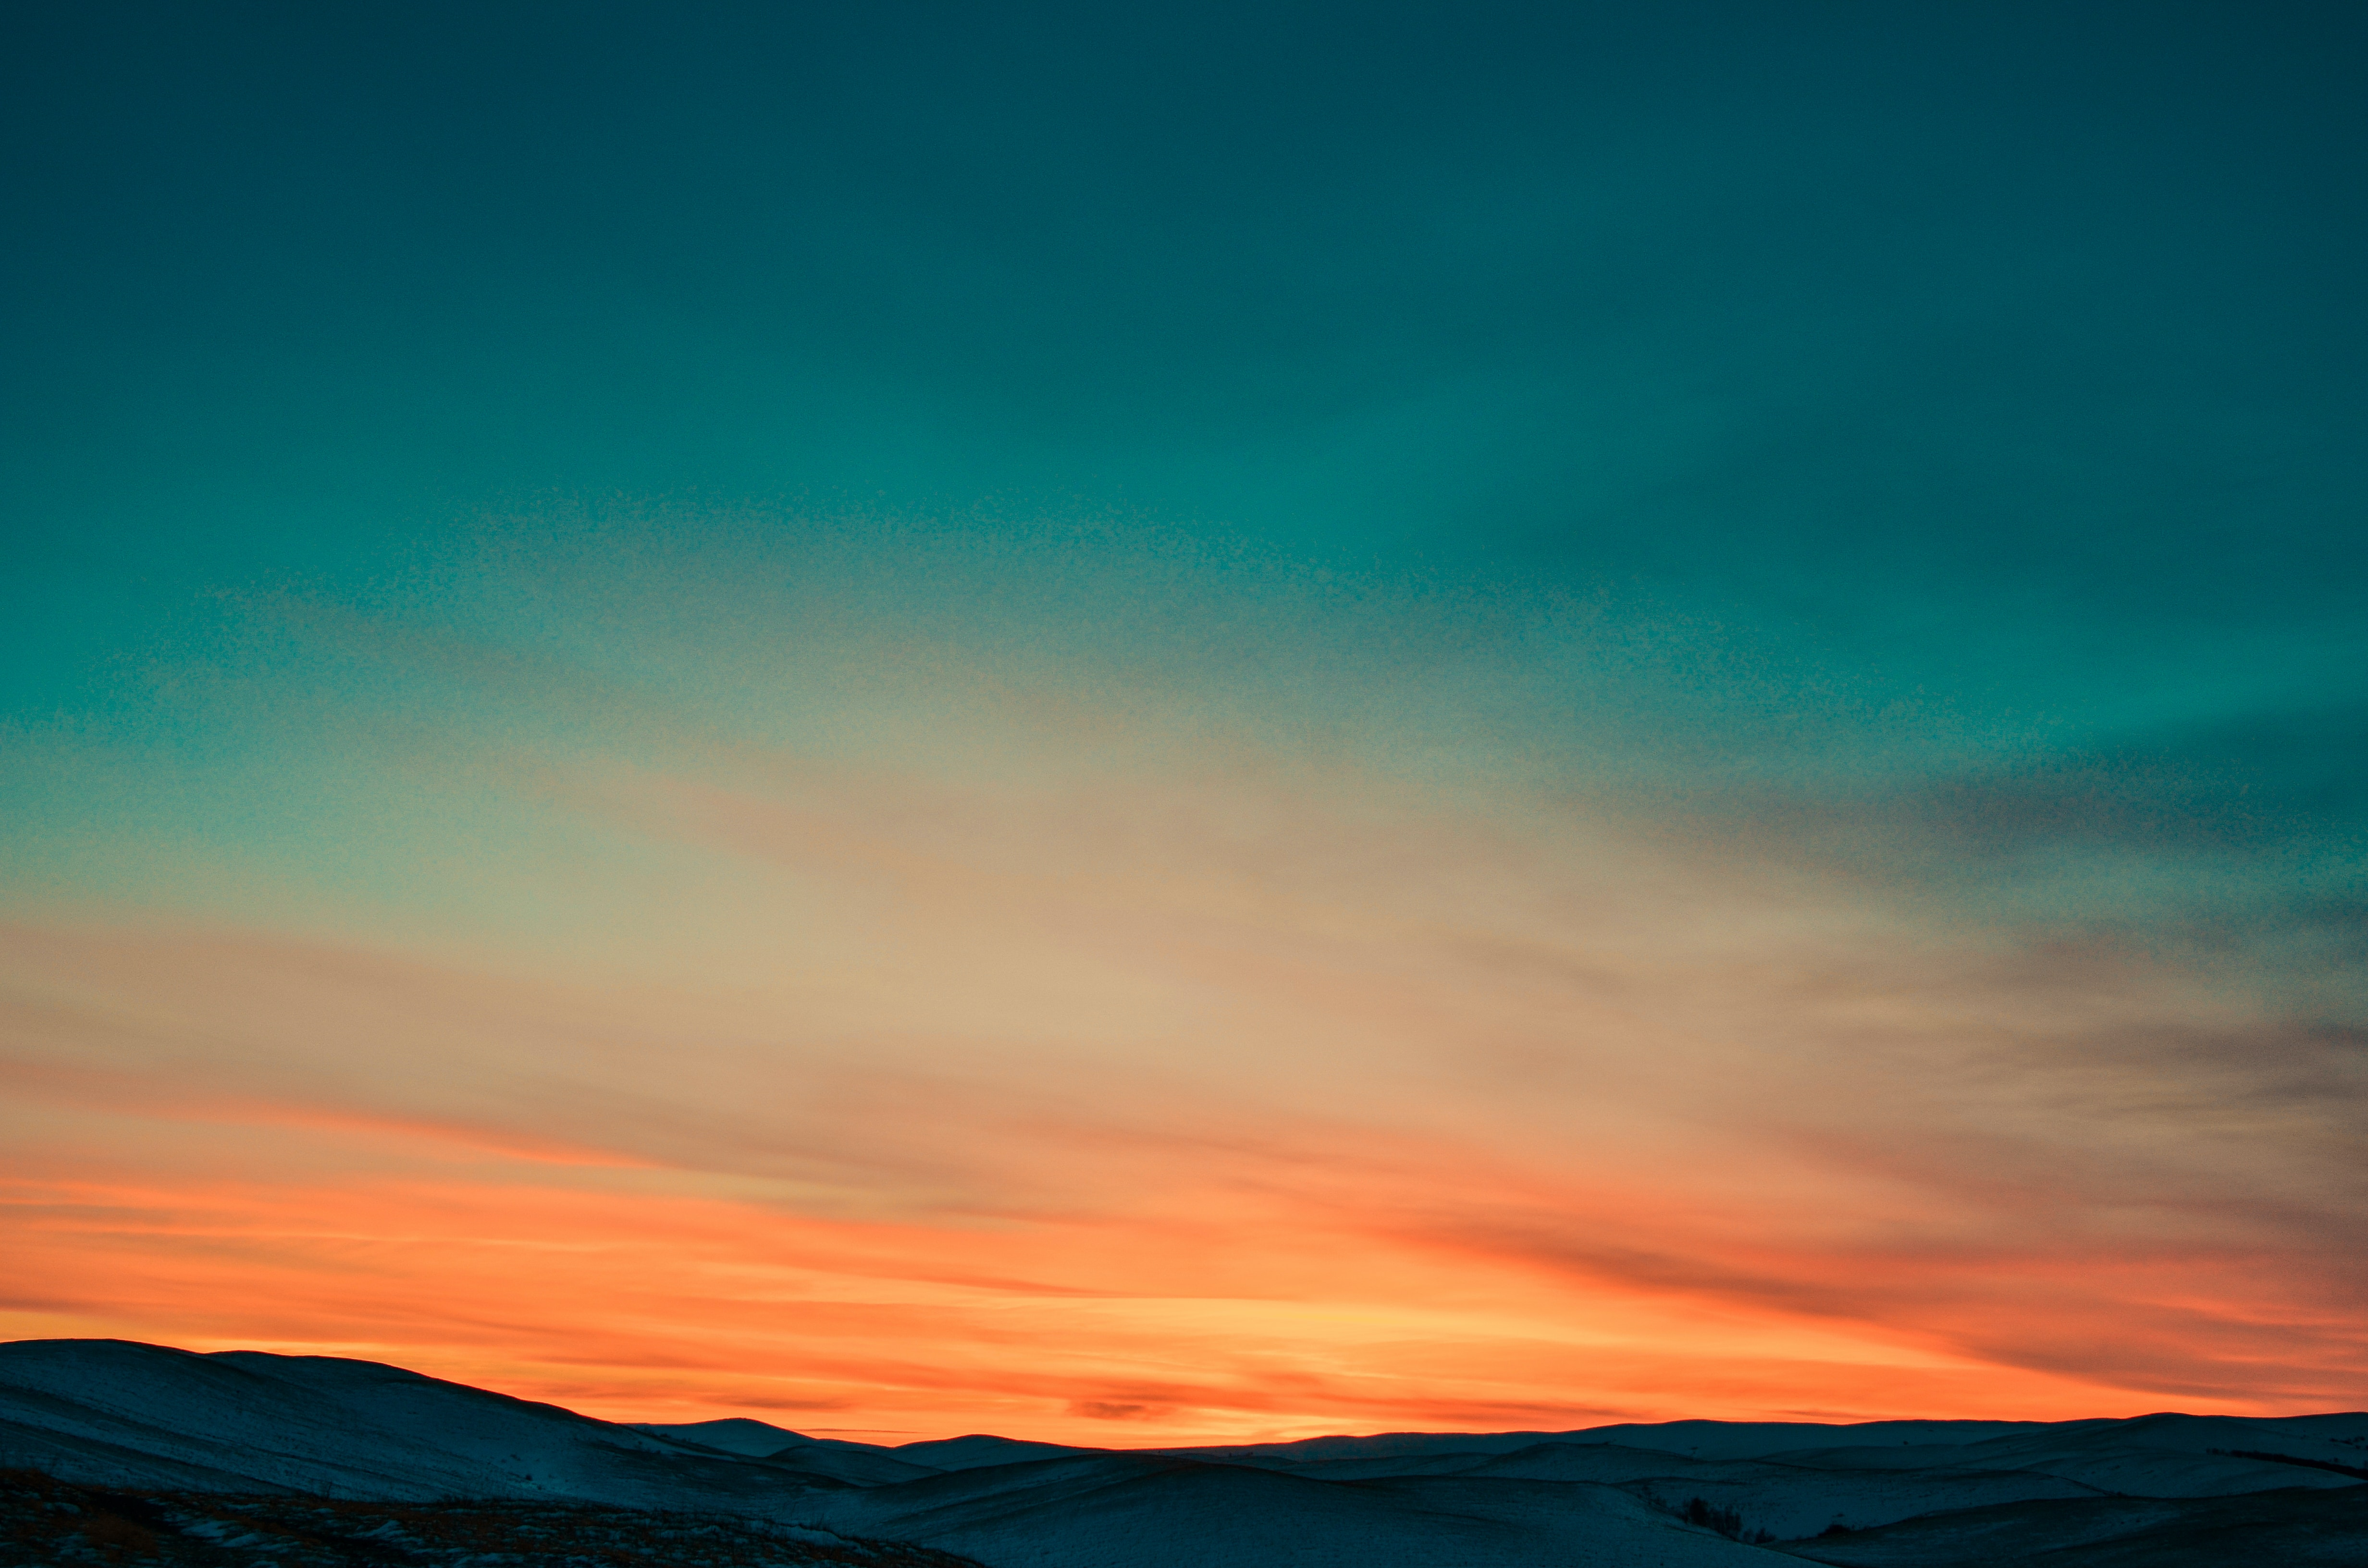 sunset pictures pexels free stock photos